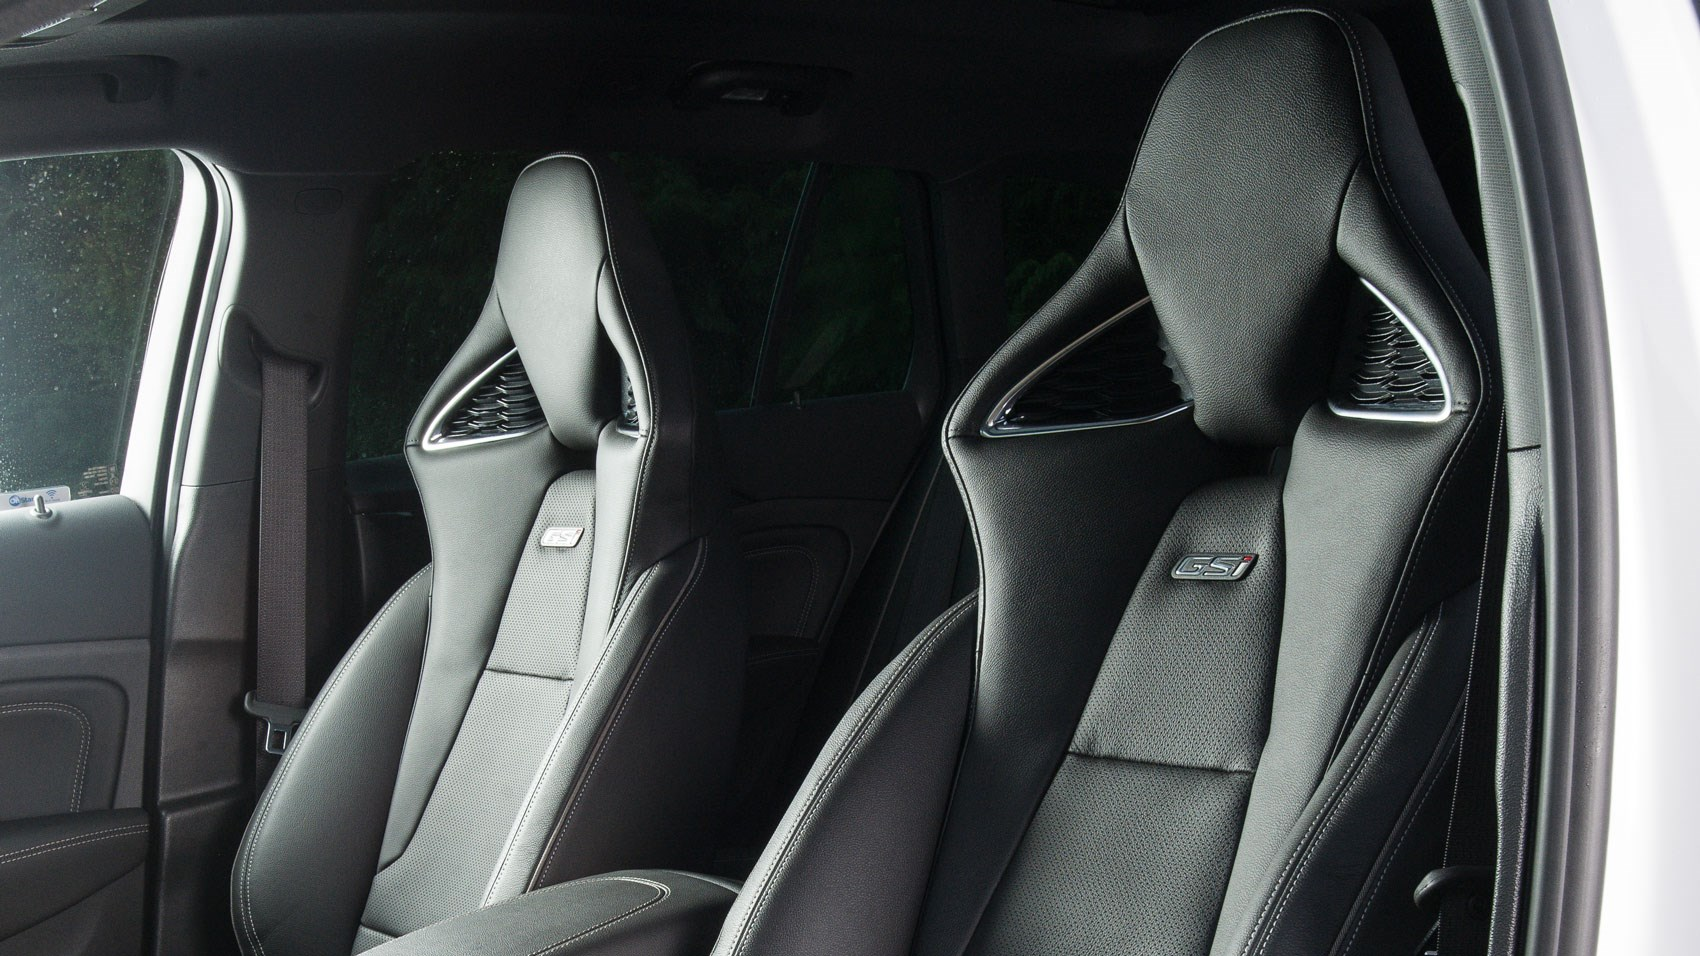 Insignia GSI front seats